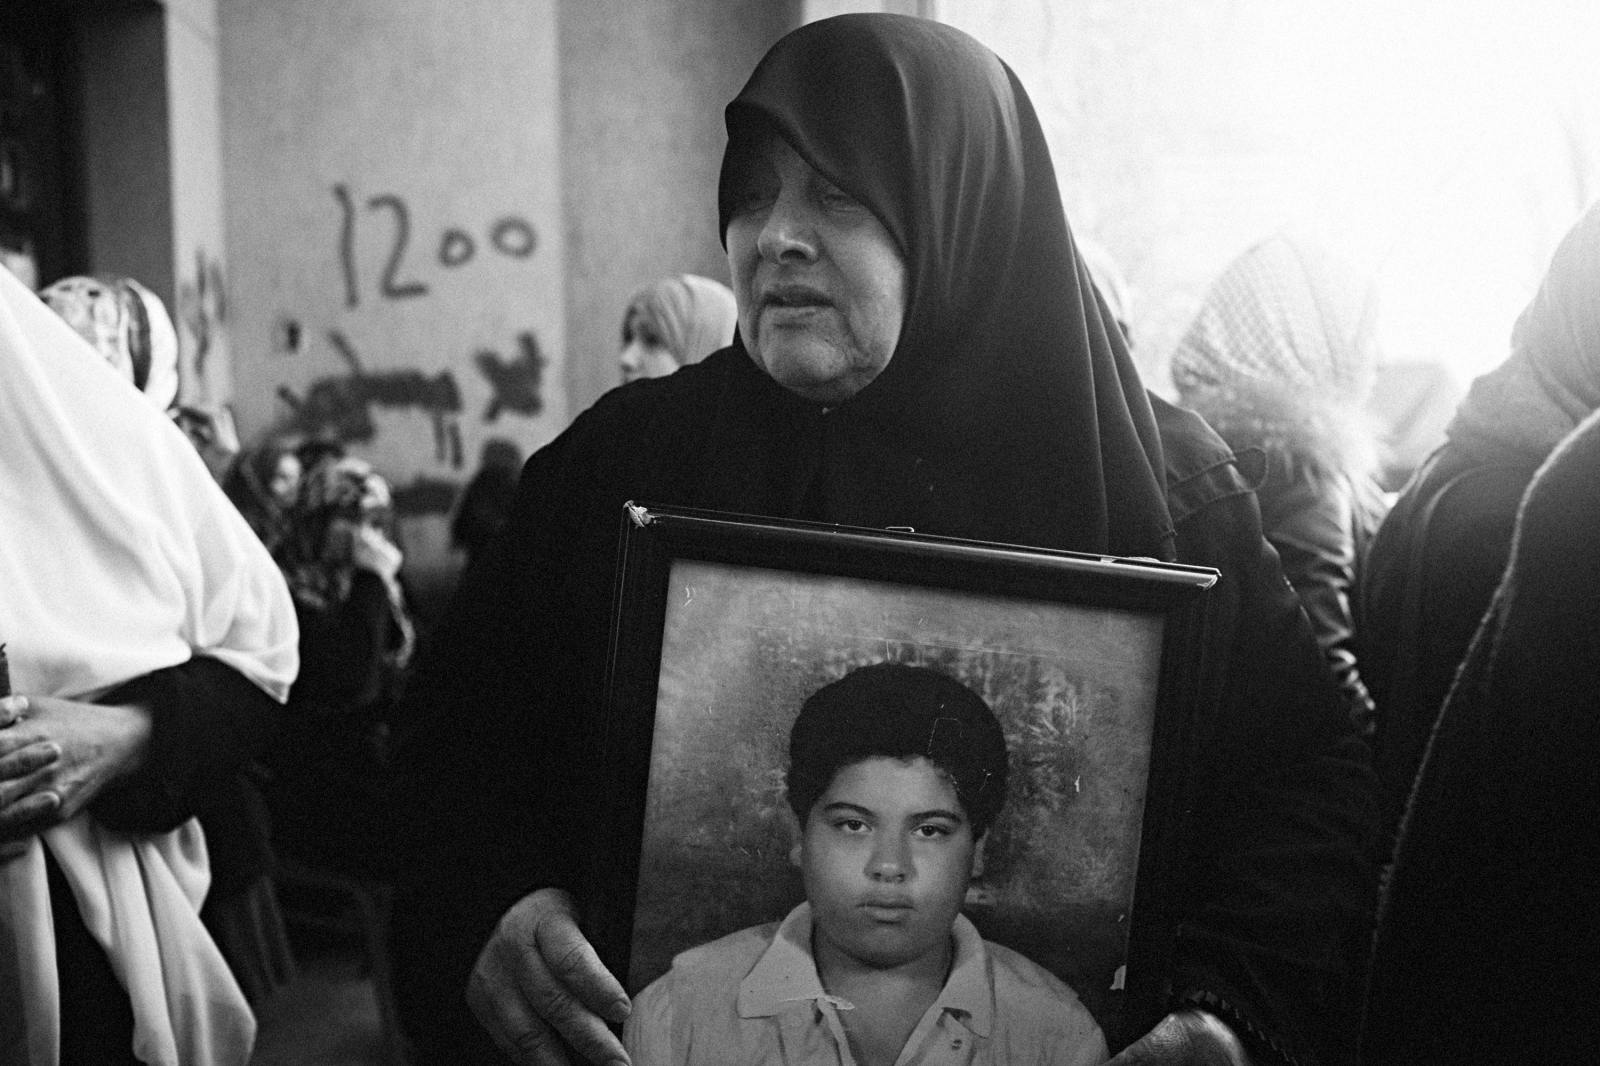 A woman holds a picture of her son, who she claims was killed in the 1996 Abu Salim massacre, along with over 1,200 other men. Benghazi, Libya, February 26, 2011.